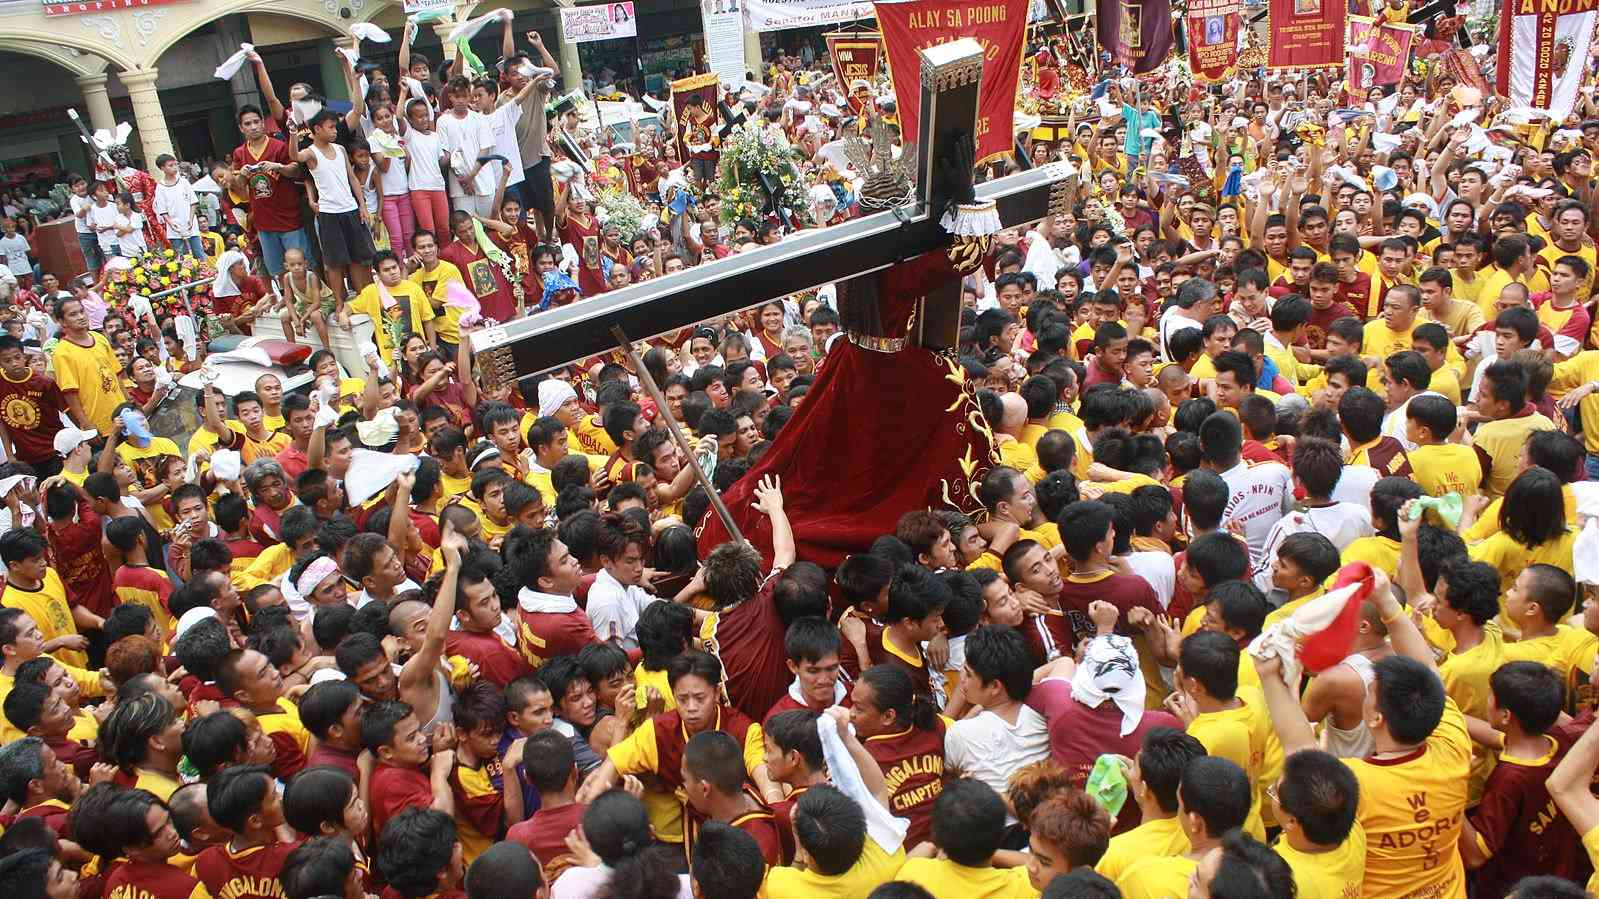 The Philippines is the only Christian nation in Asia and the people take their religious holidays very seriously!